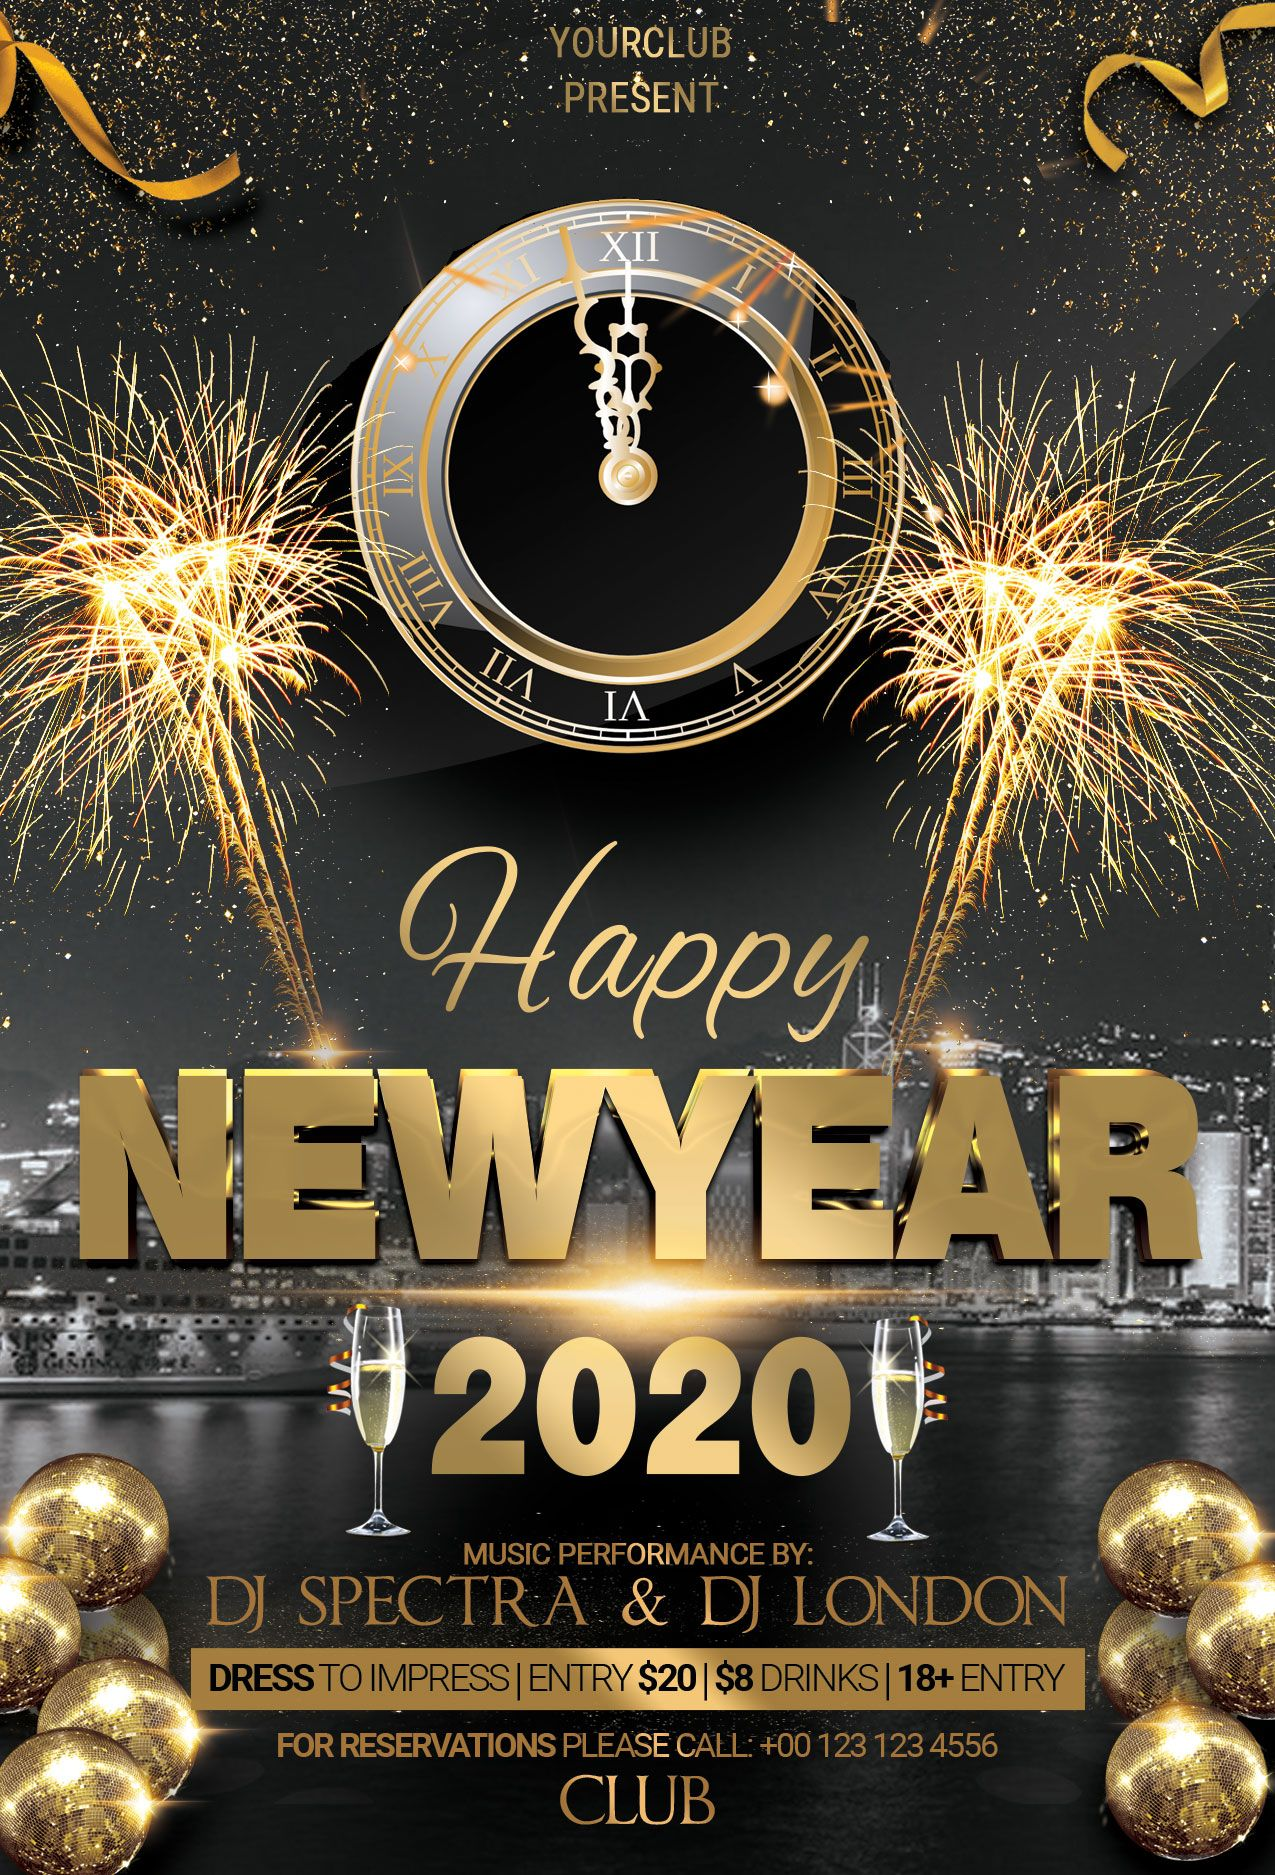 Happy 2020 New Years Free Psd Flyer Template Studioflyers Com Free Psd Flyer Templates Free Flyer Templates Free Psd Flyer